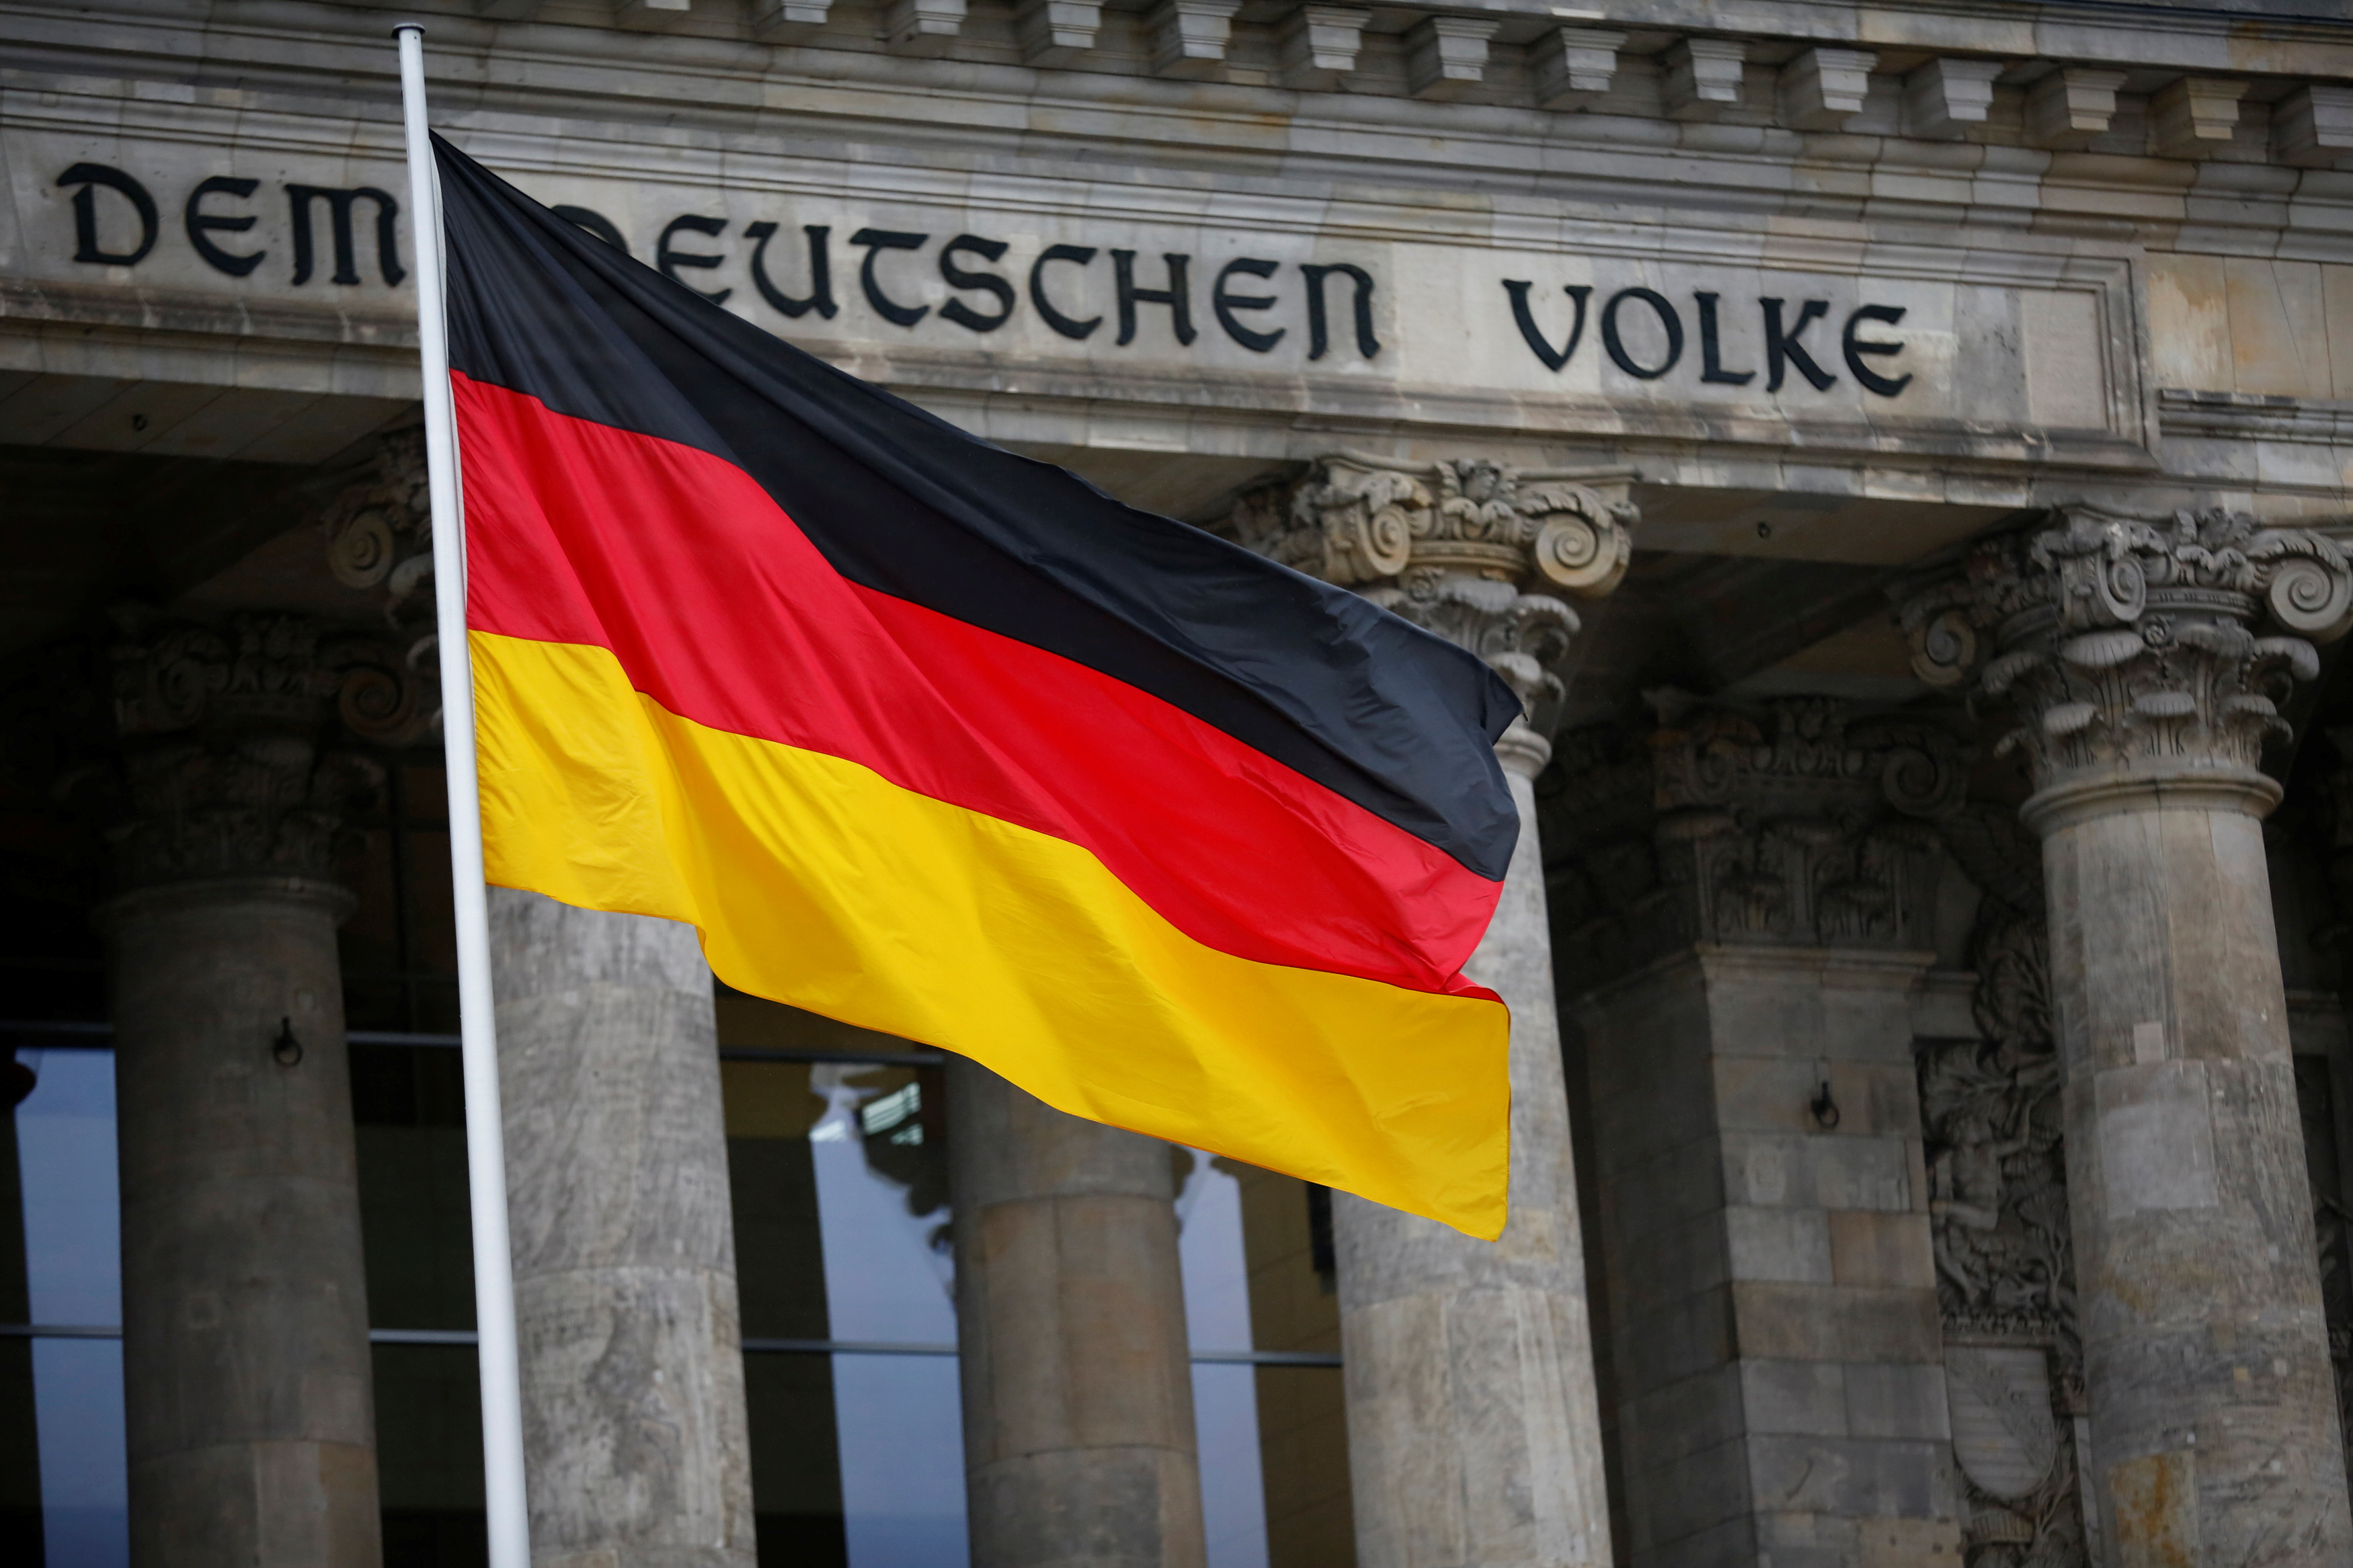 The German flag is seen outside Germany's Bundestag, the lower house of parliament. in Berlin, Germany, March 14, 2018. REUTERS/Hannibal Hanschke